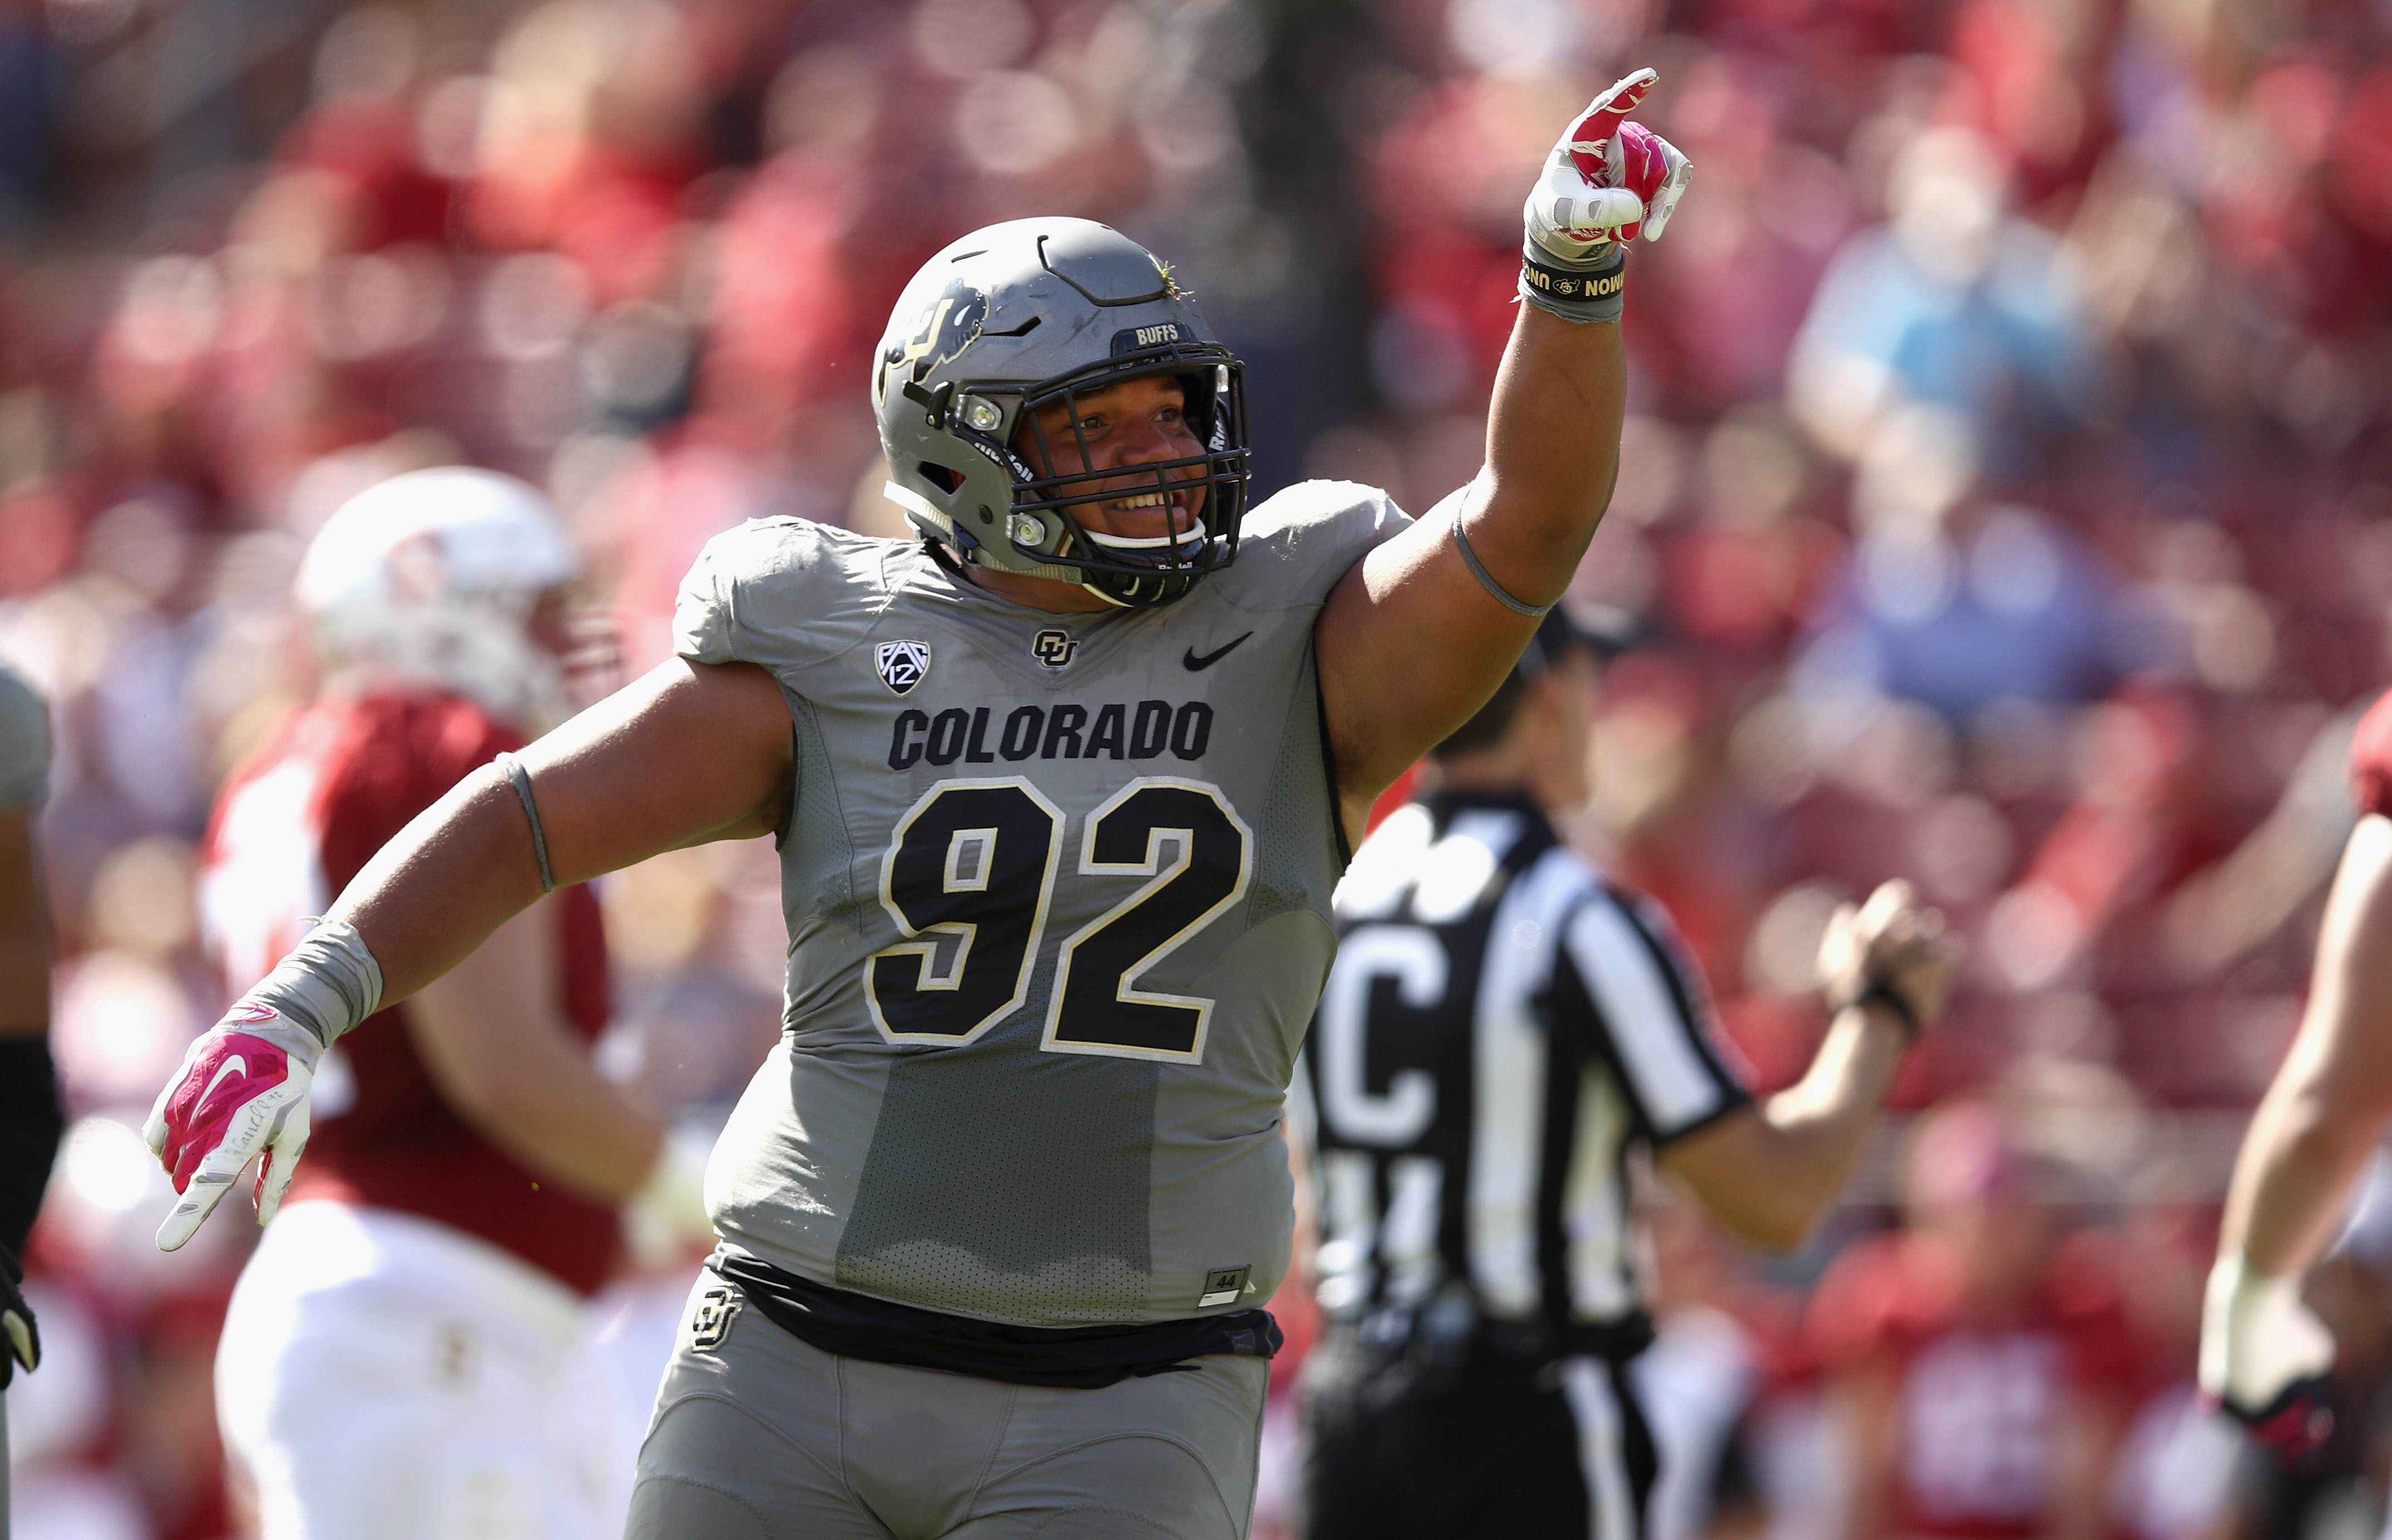 PALO ALTO, CA - OCTOBER 22:  Jordan Carrell #92 of the Colorado Buffaloes reacts after he sacked Ryan Burns #17 of the Stanford Cardinal at Stanford Stadium on October 22, 2016 in Palo Alto, California.  (Photo by Ezra Shaw/Getty Images)